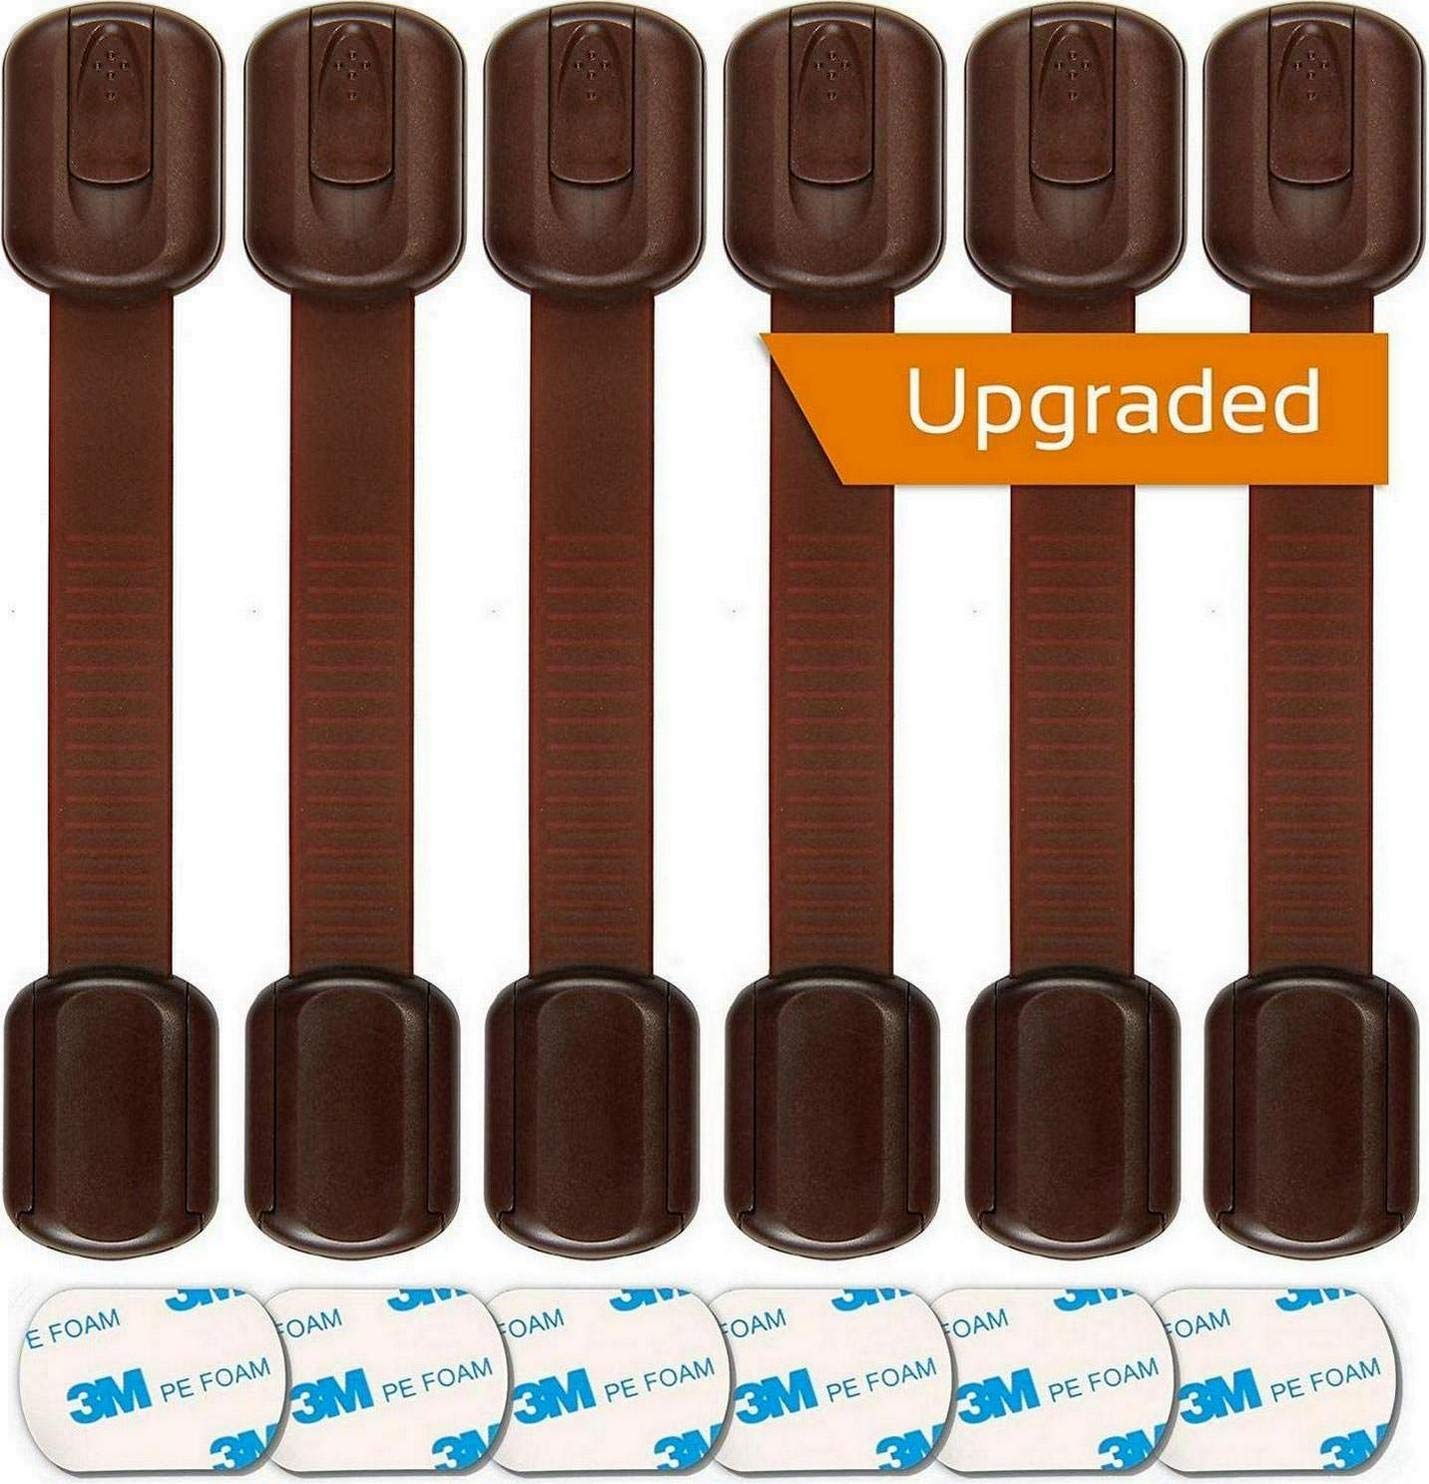 Baby Proofing Safety Cabinet Locks - Child Proof Latches for Drawer Cupboard Dresser Doors Closet Oven Refrigerator - Adjustable Childproof Straps by Oxlay - Brown - 6 Pack